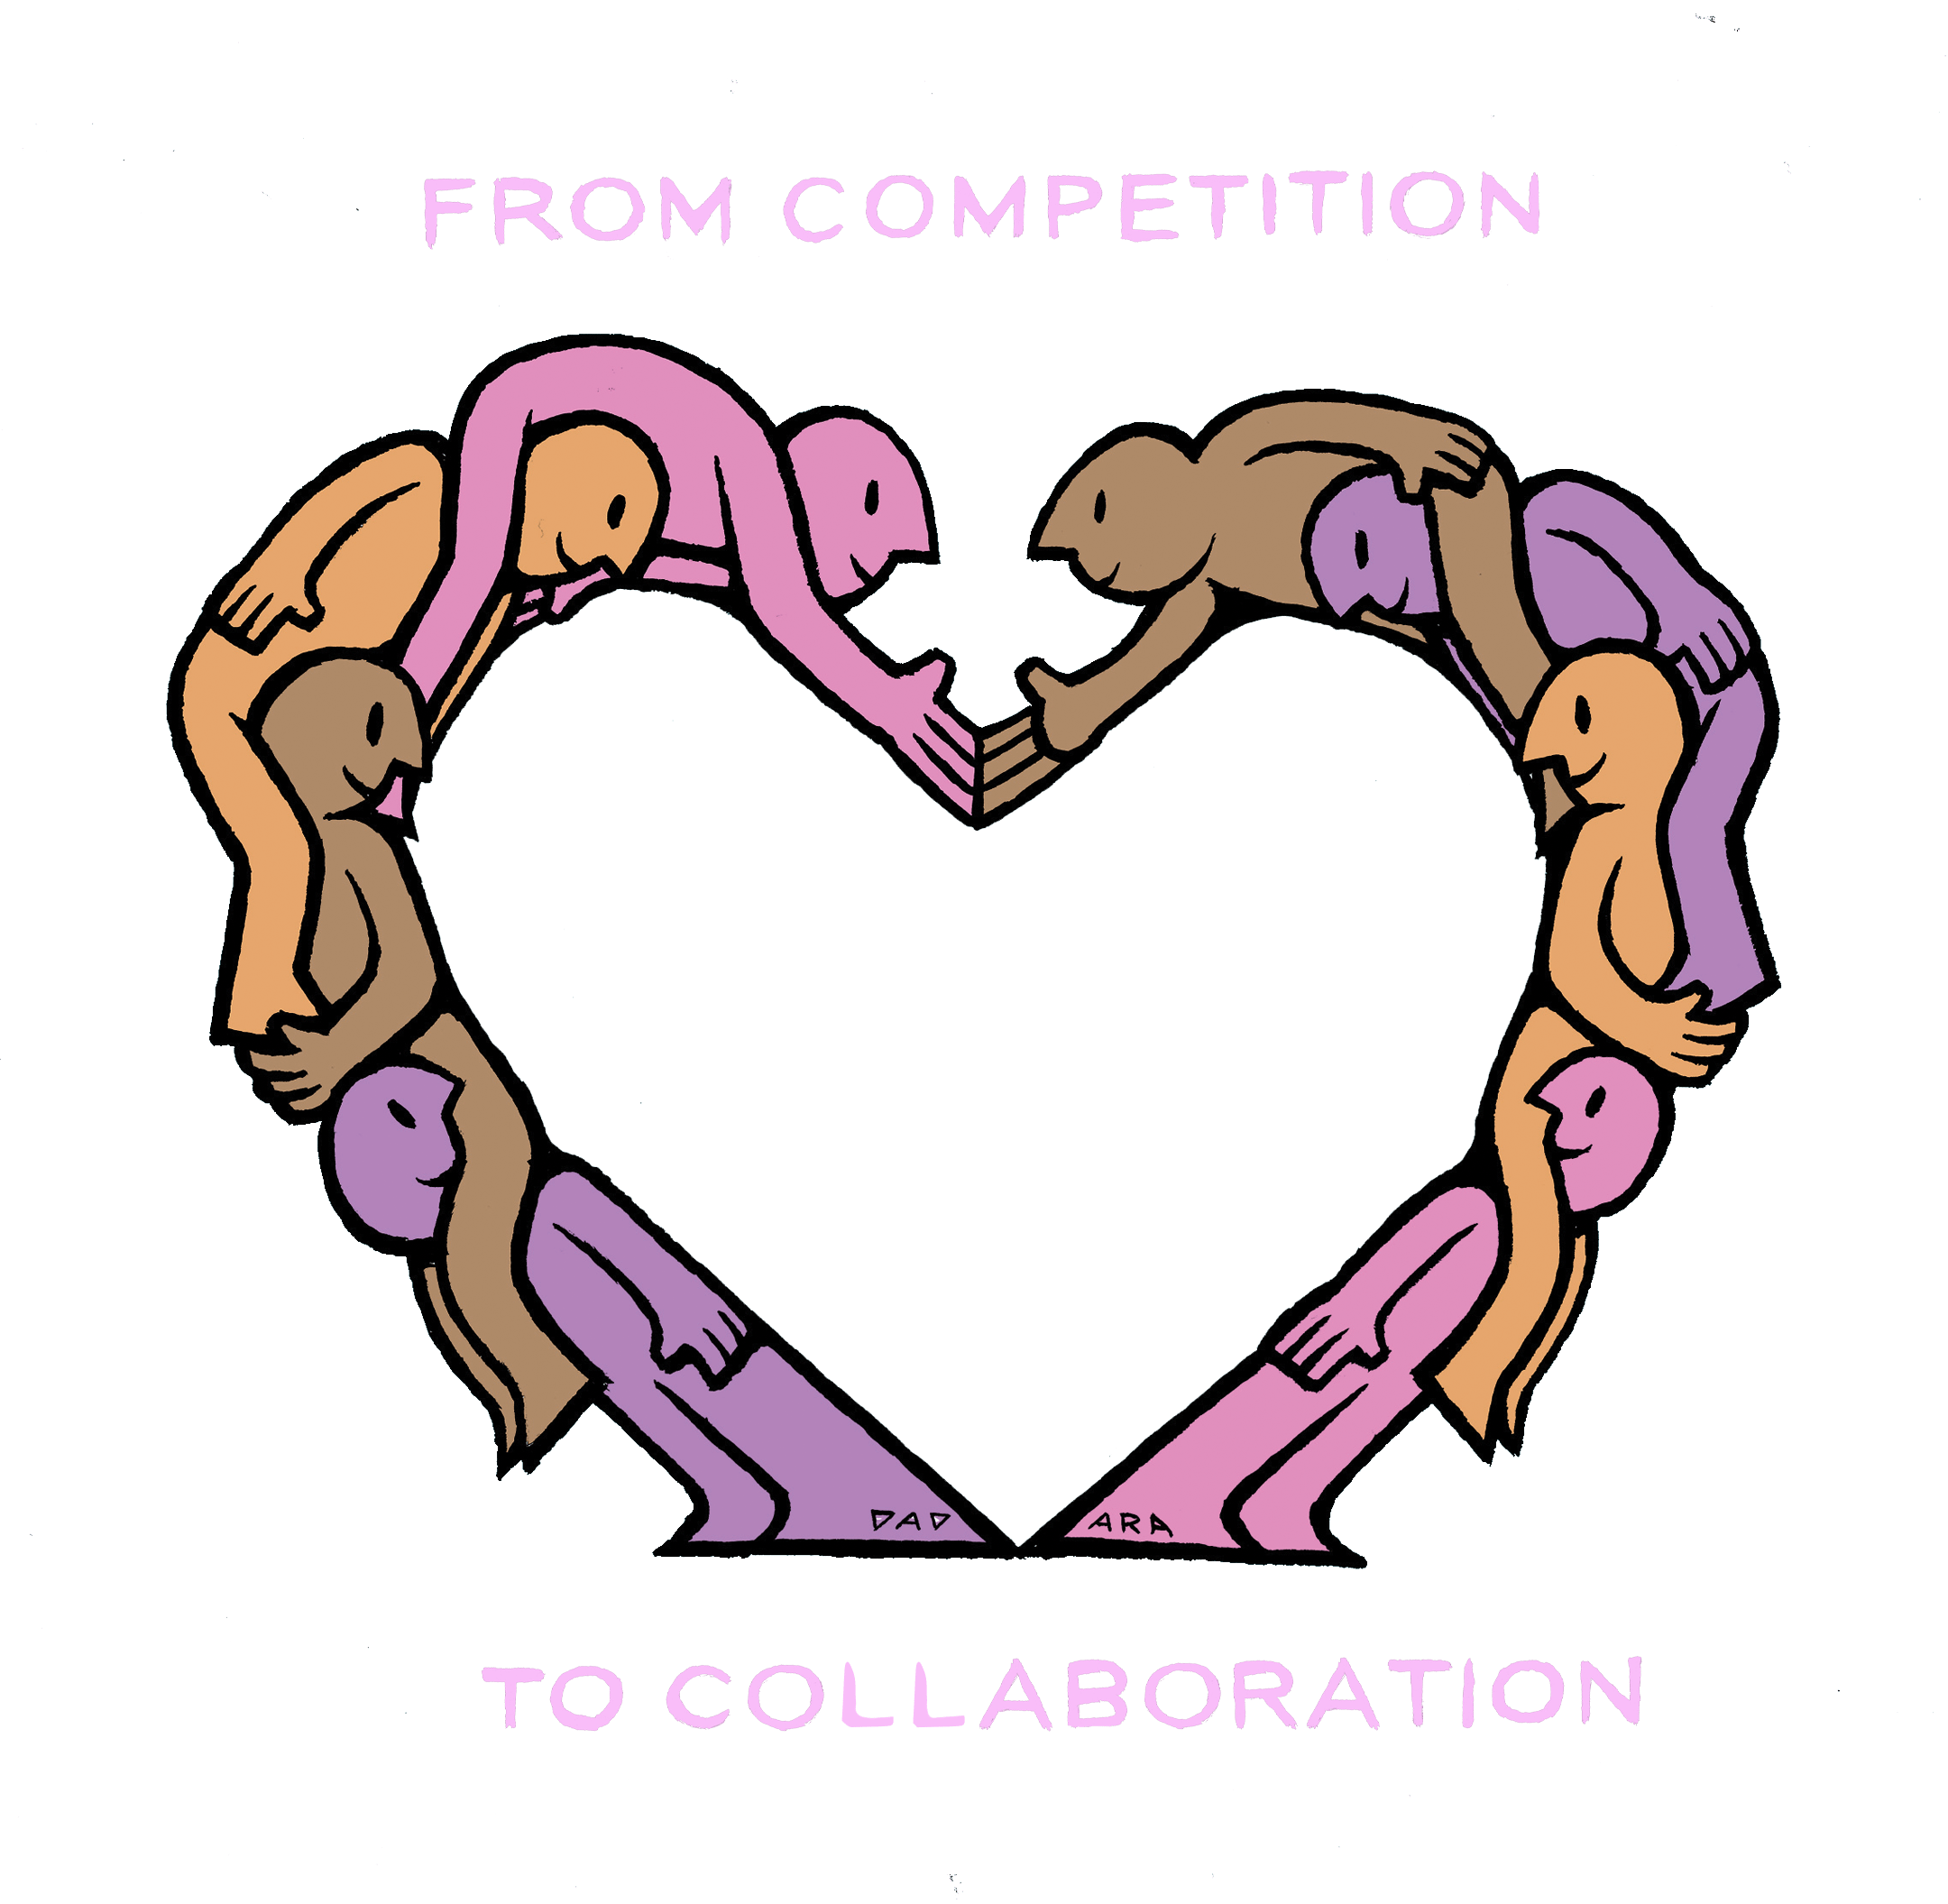 From Competition to Collaboration